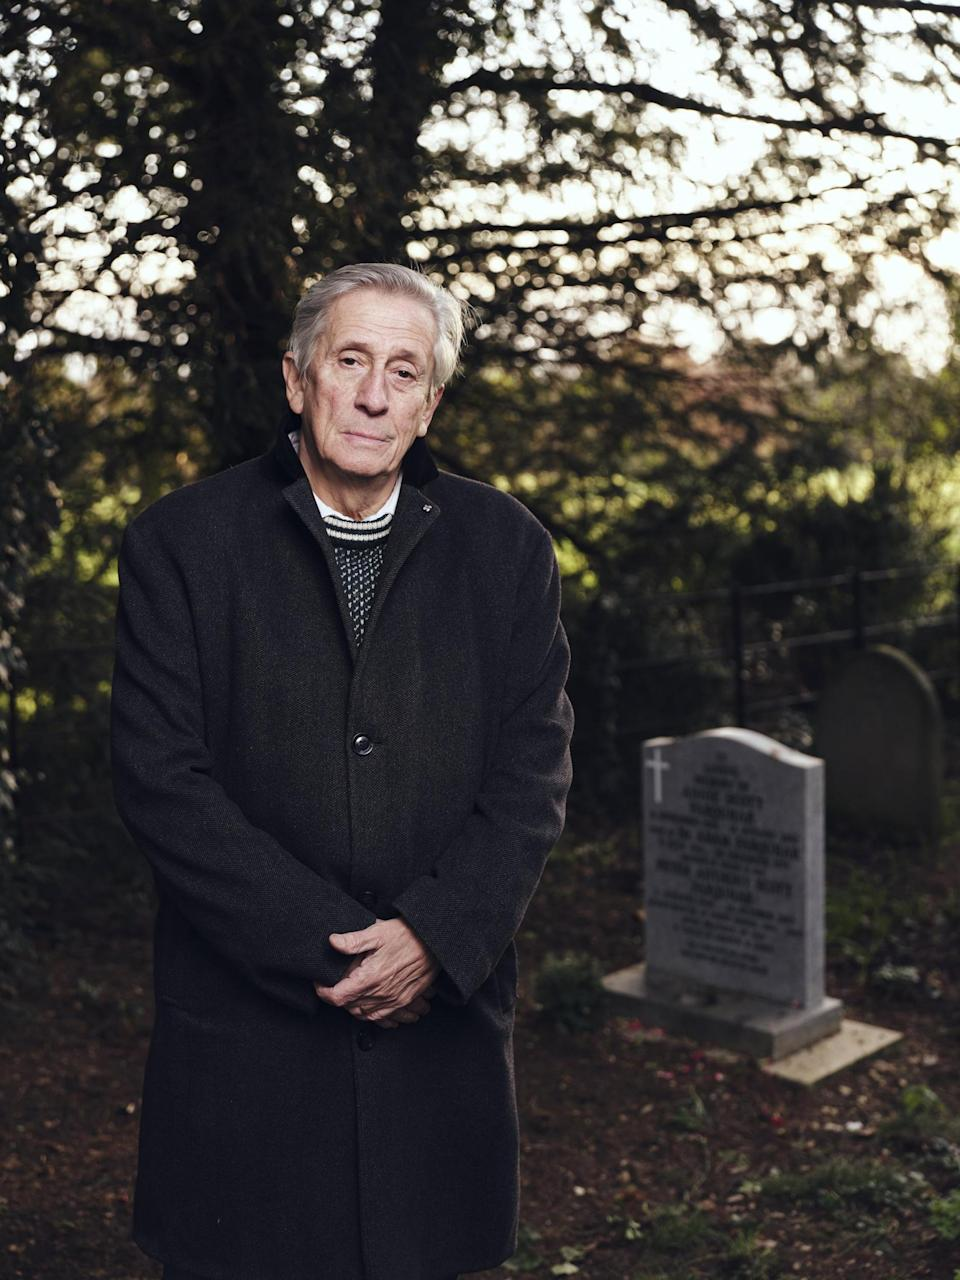 Ian Farquhar, brother of murder victim Peter Farquhar (Channel 4)